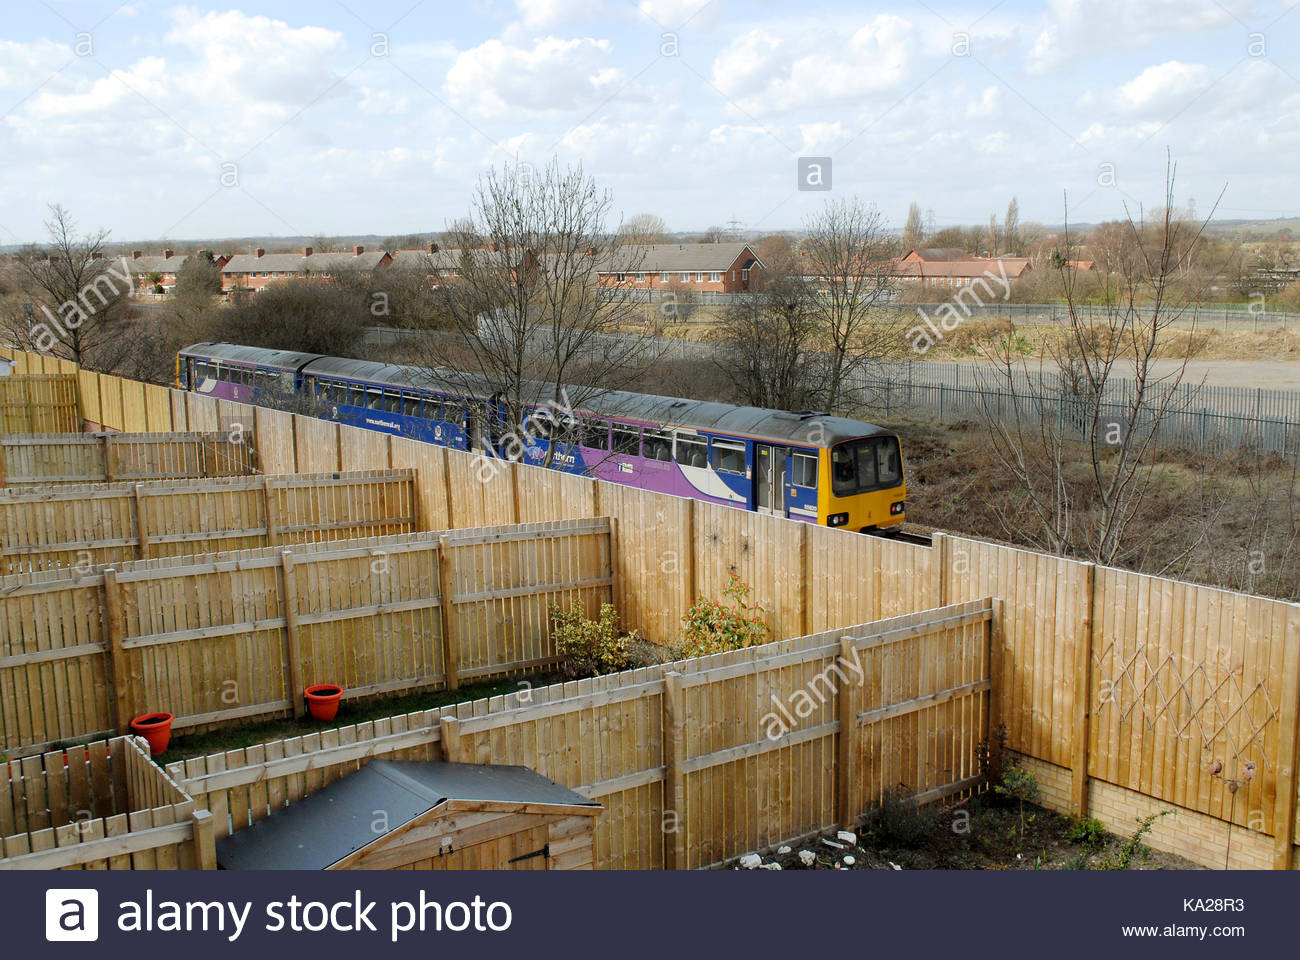 A class 144 DMU on Northern Rail passes close to urban gardens on the Leeds to Castleford railway line in West Yorkshire. - Stock Image